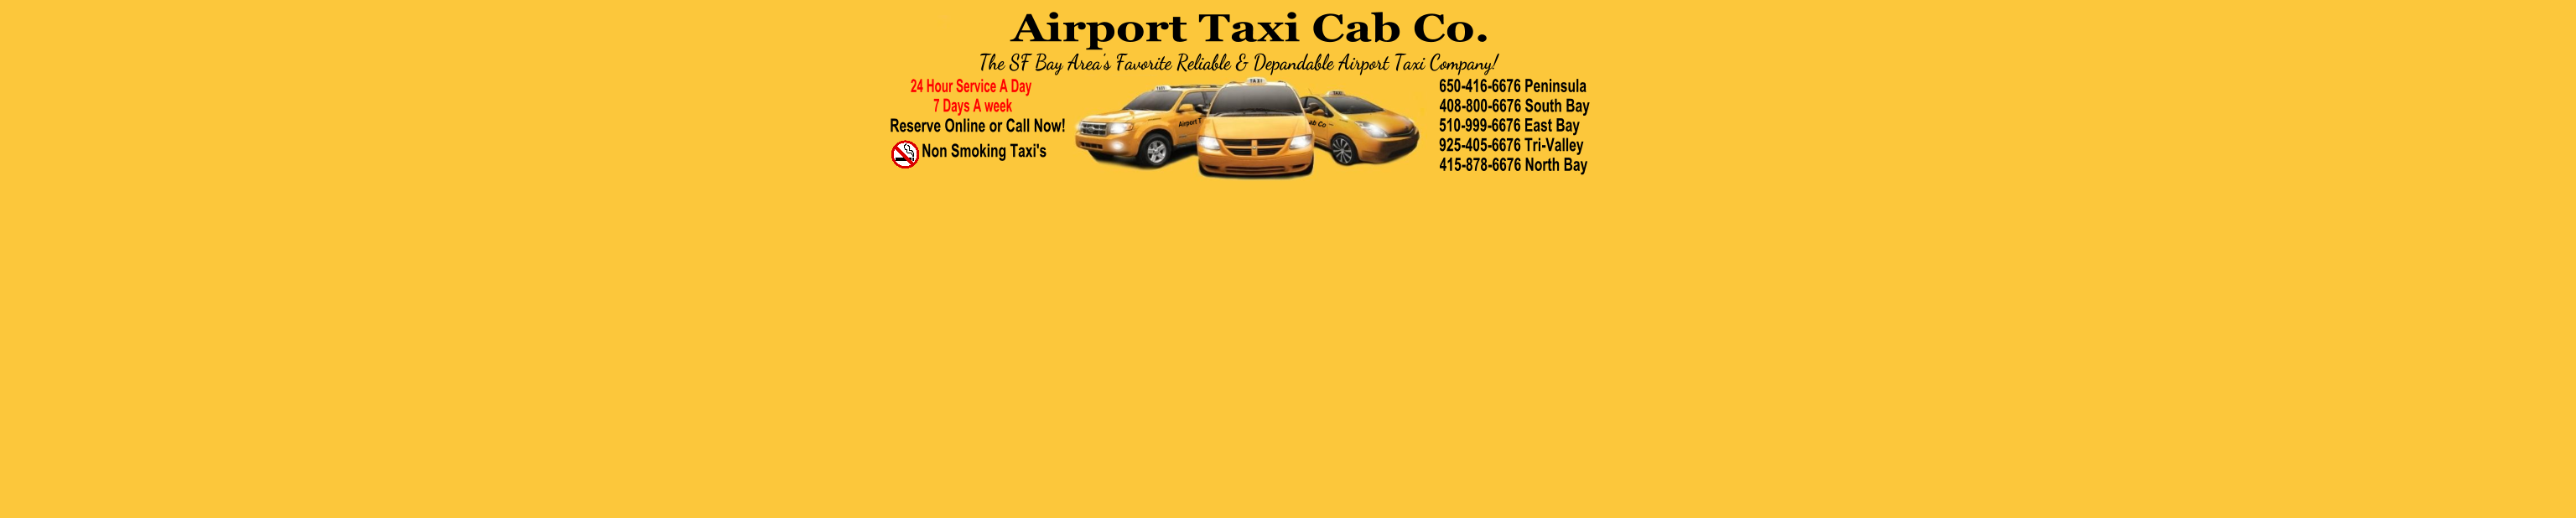 Yellow Cab Taxi Airports Competitors, Revenue and Employees